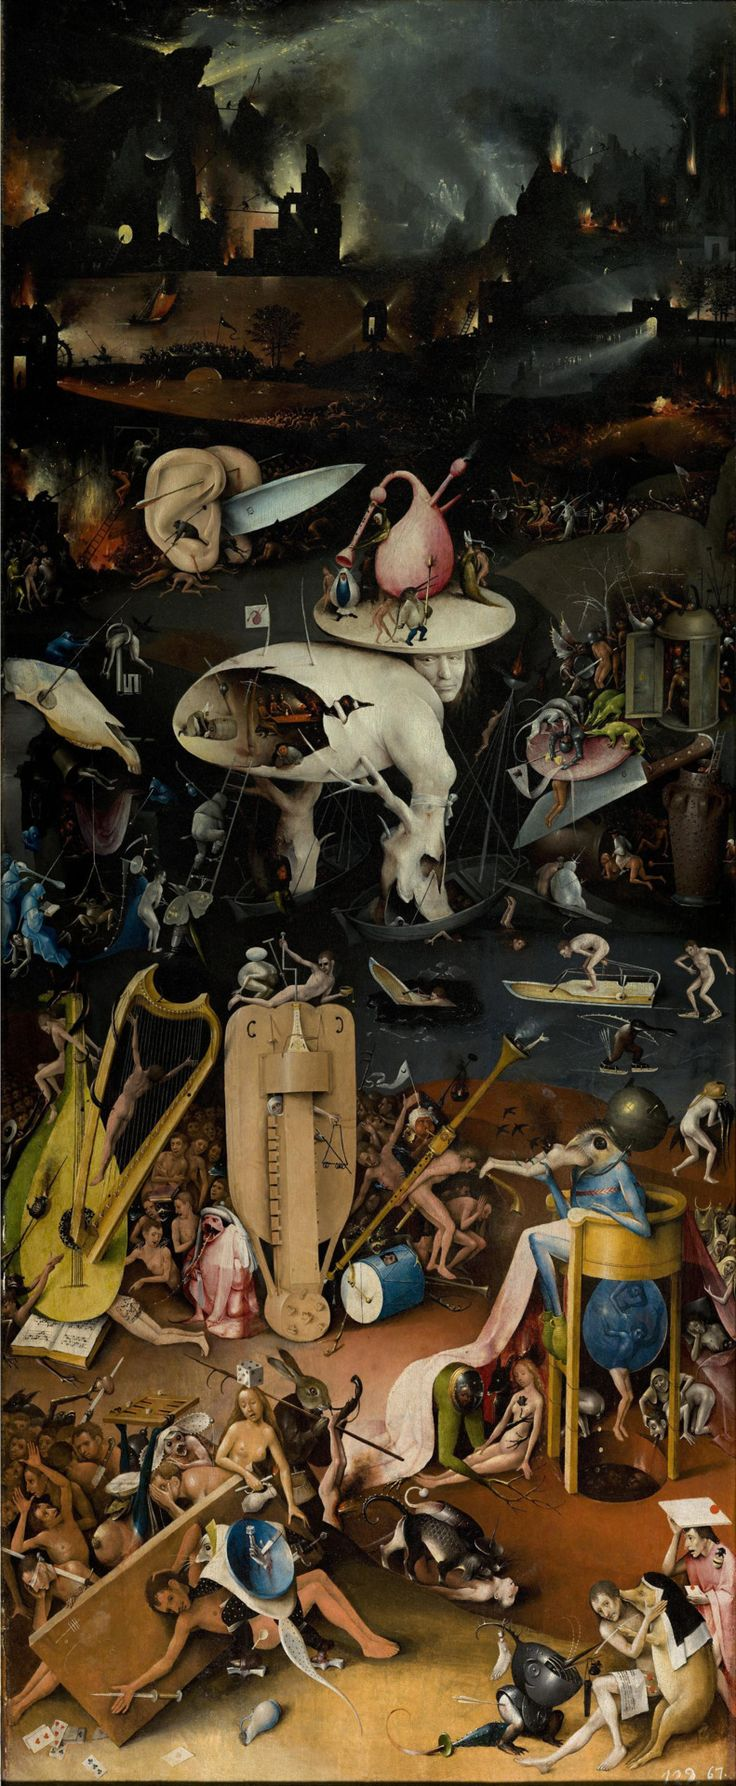 17 Best ideas about Hieronymus Bosch on Pinterest Hieronymus